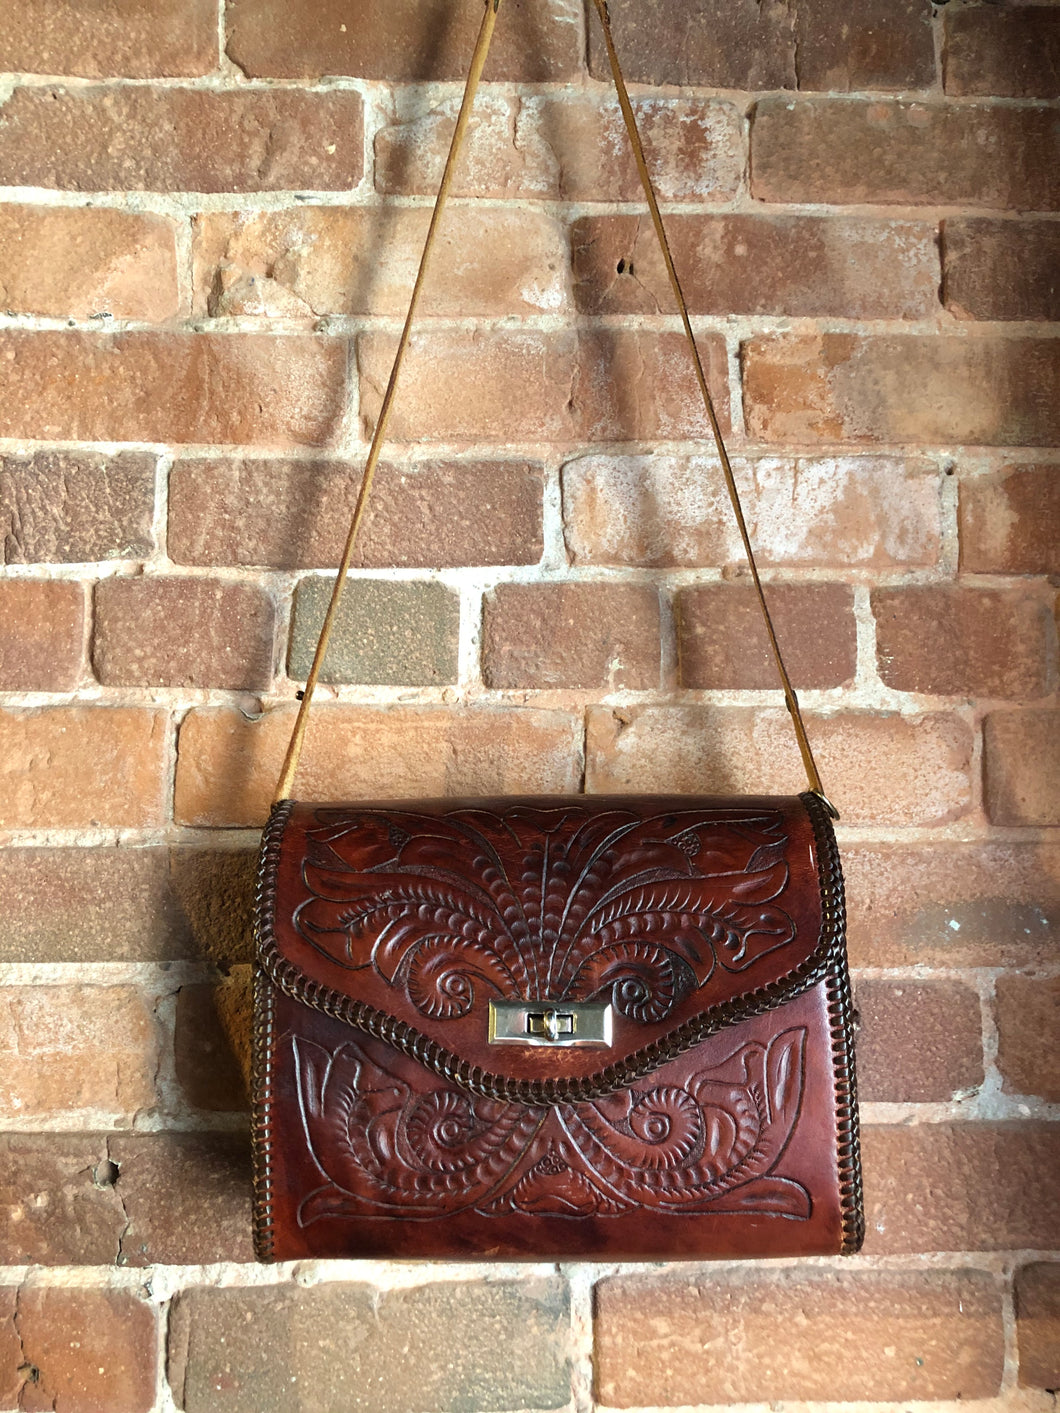 Hand tooled brown leather purse with leather stitching around the trim and a red leather flower motif lining.